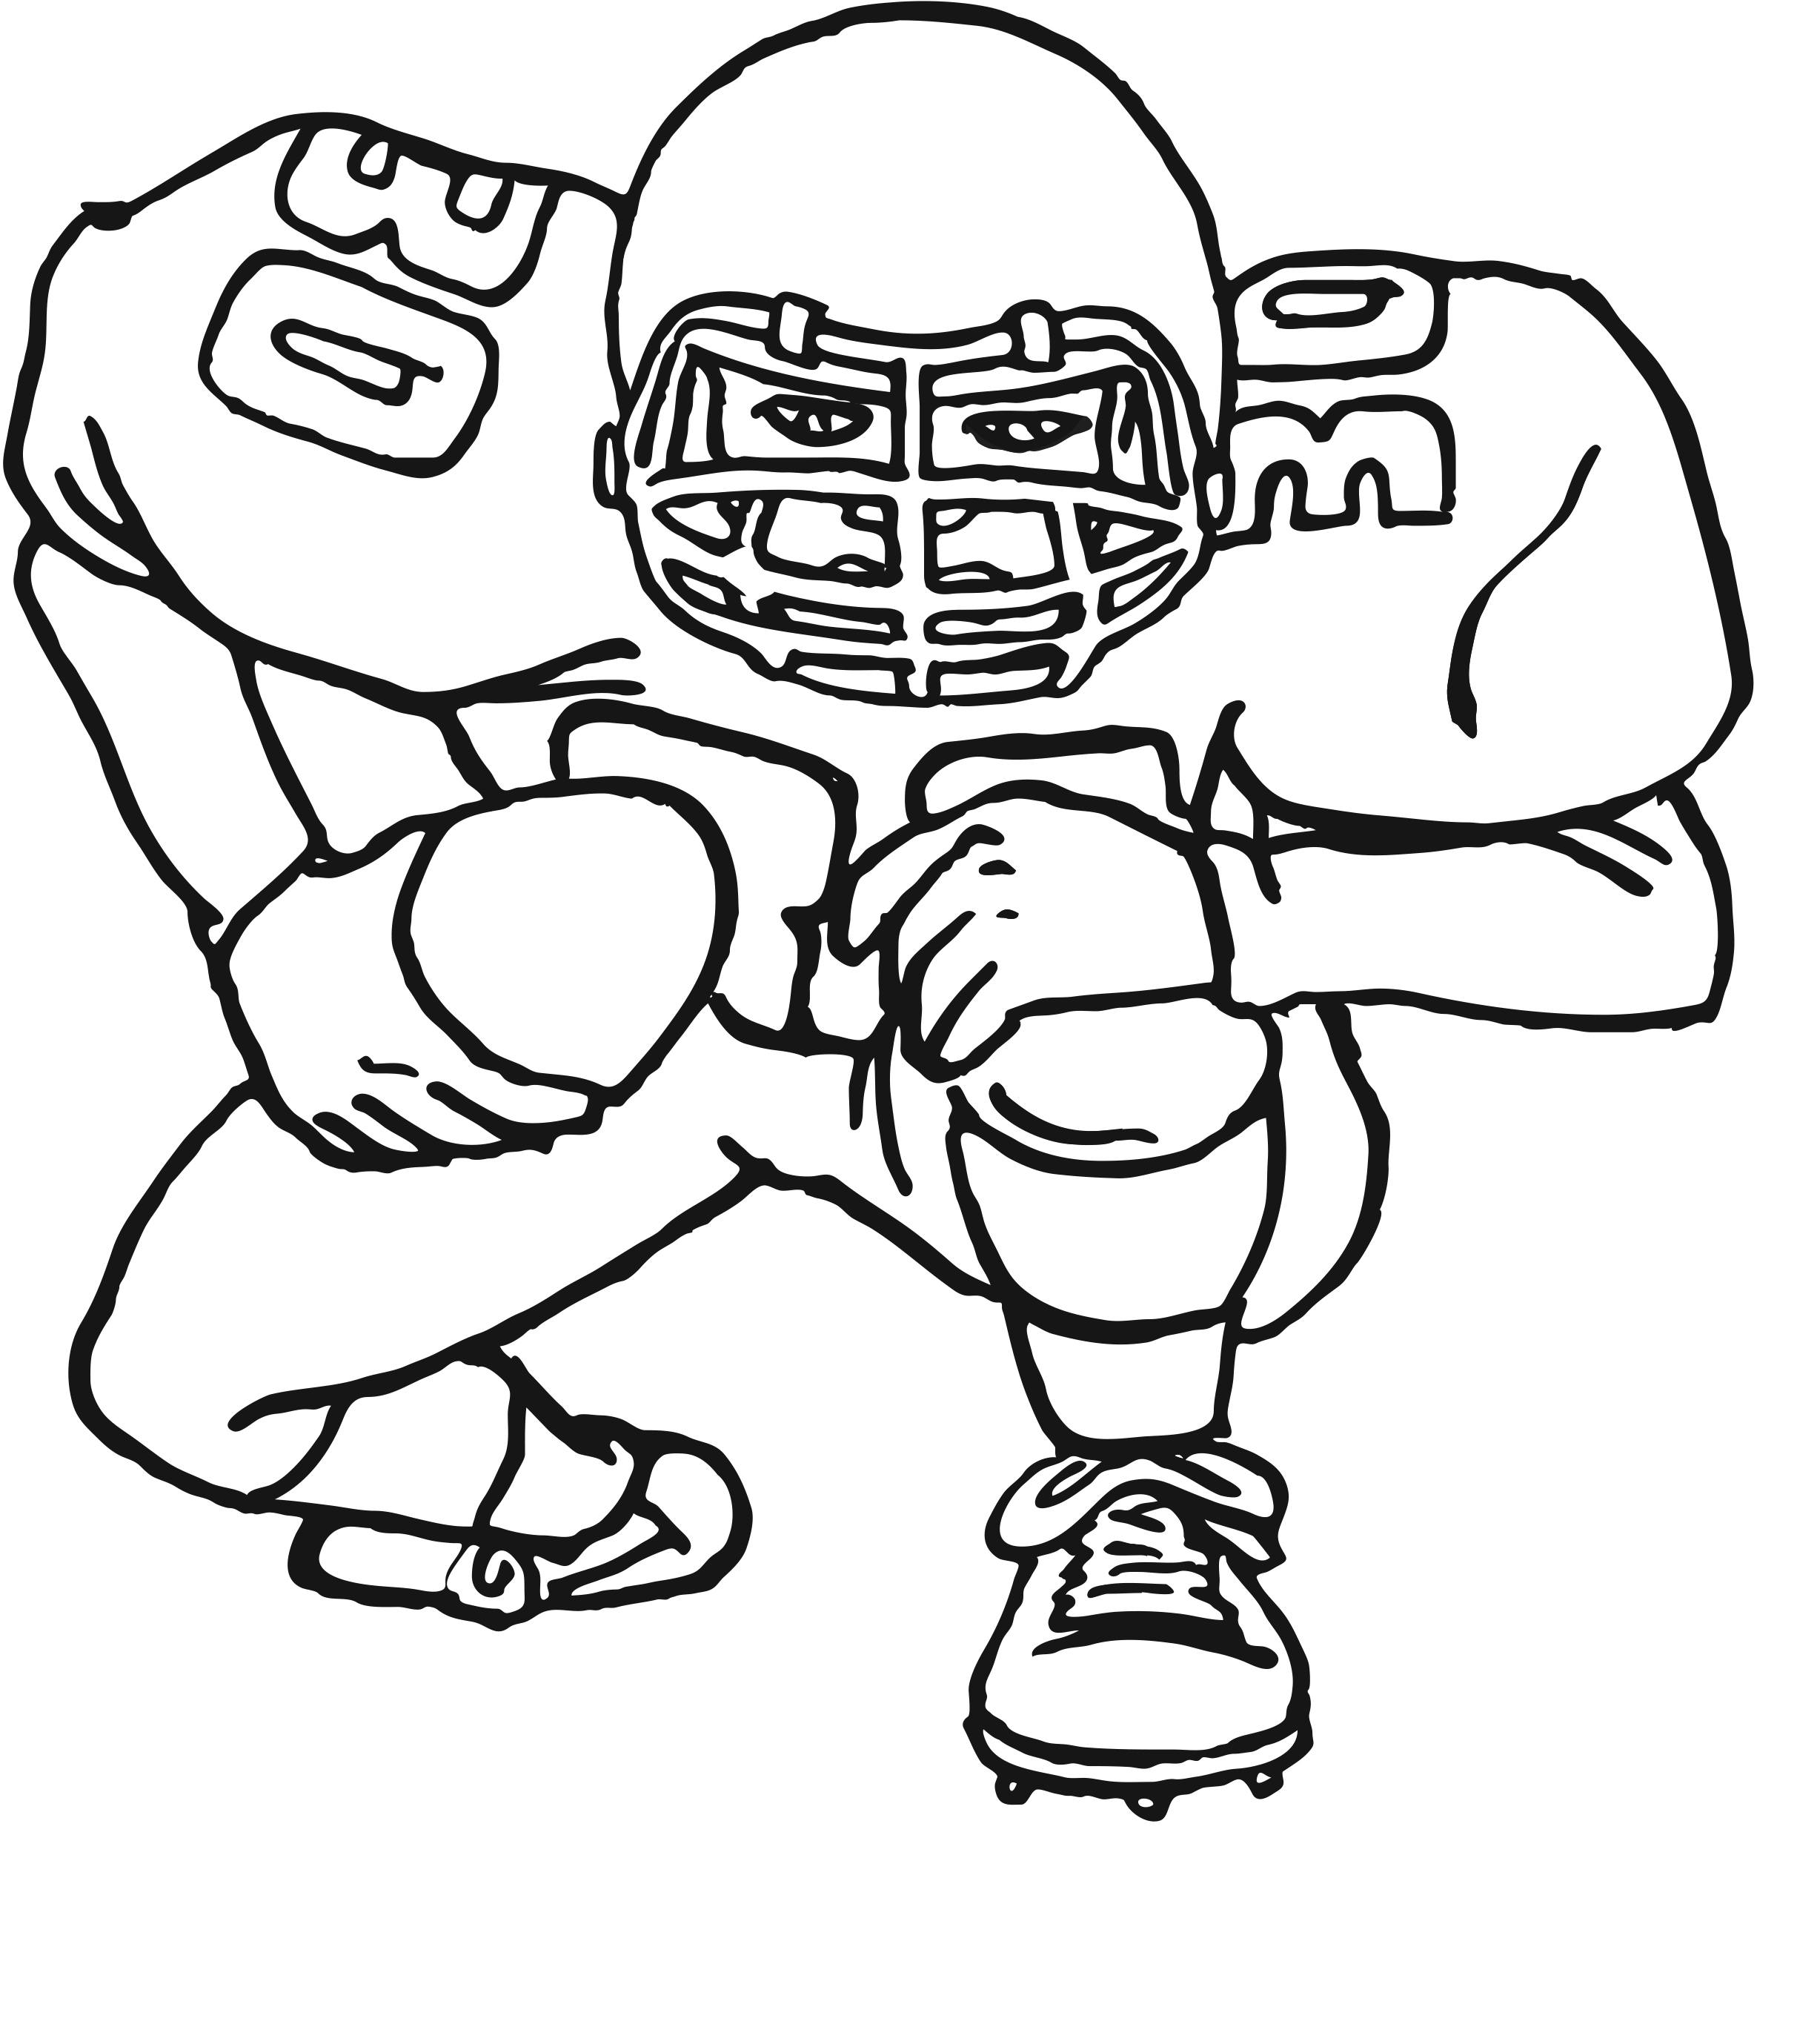 football coloring pages free printable recreation coloring sheets janice39s daycare football pages coloring free printable